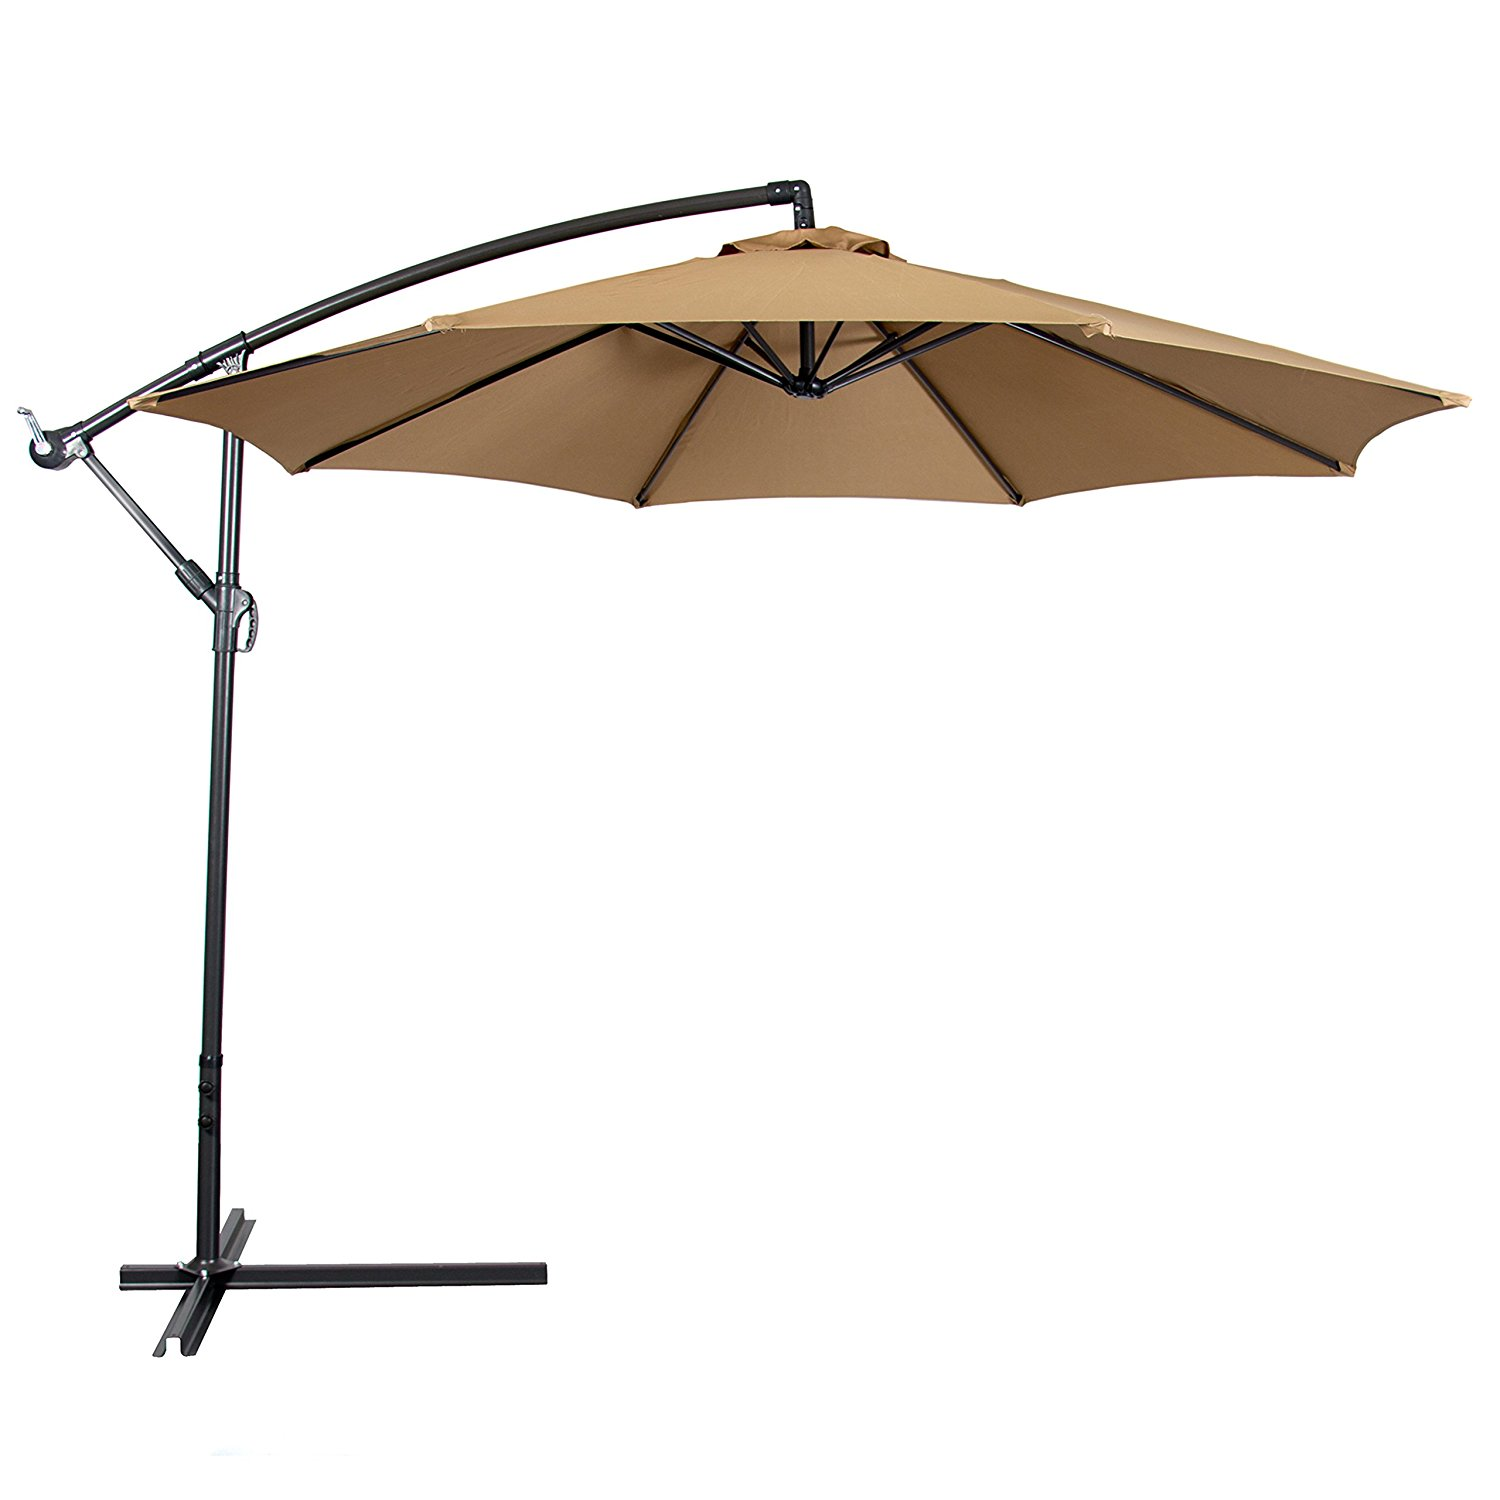 patio umbrellas amazon.com : best choice products patio umbrella offset 10u0027 hanging umbrella  outdoor PRBTEML